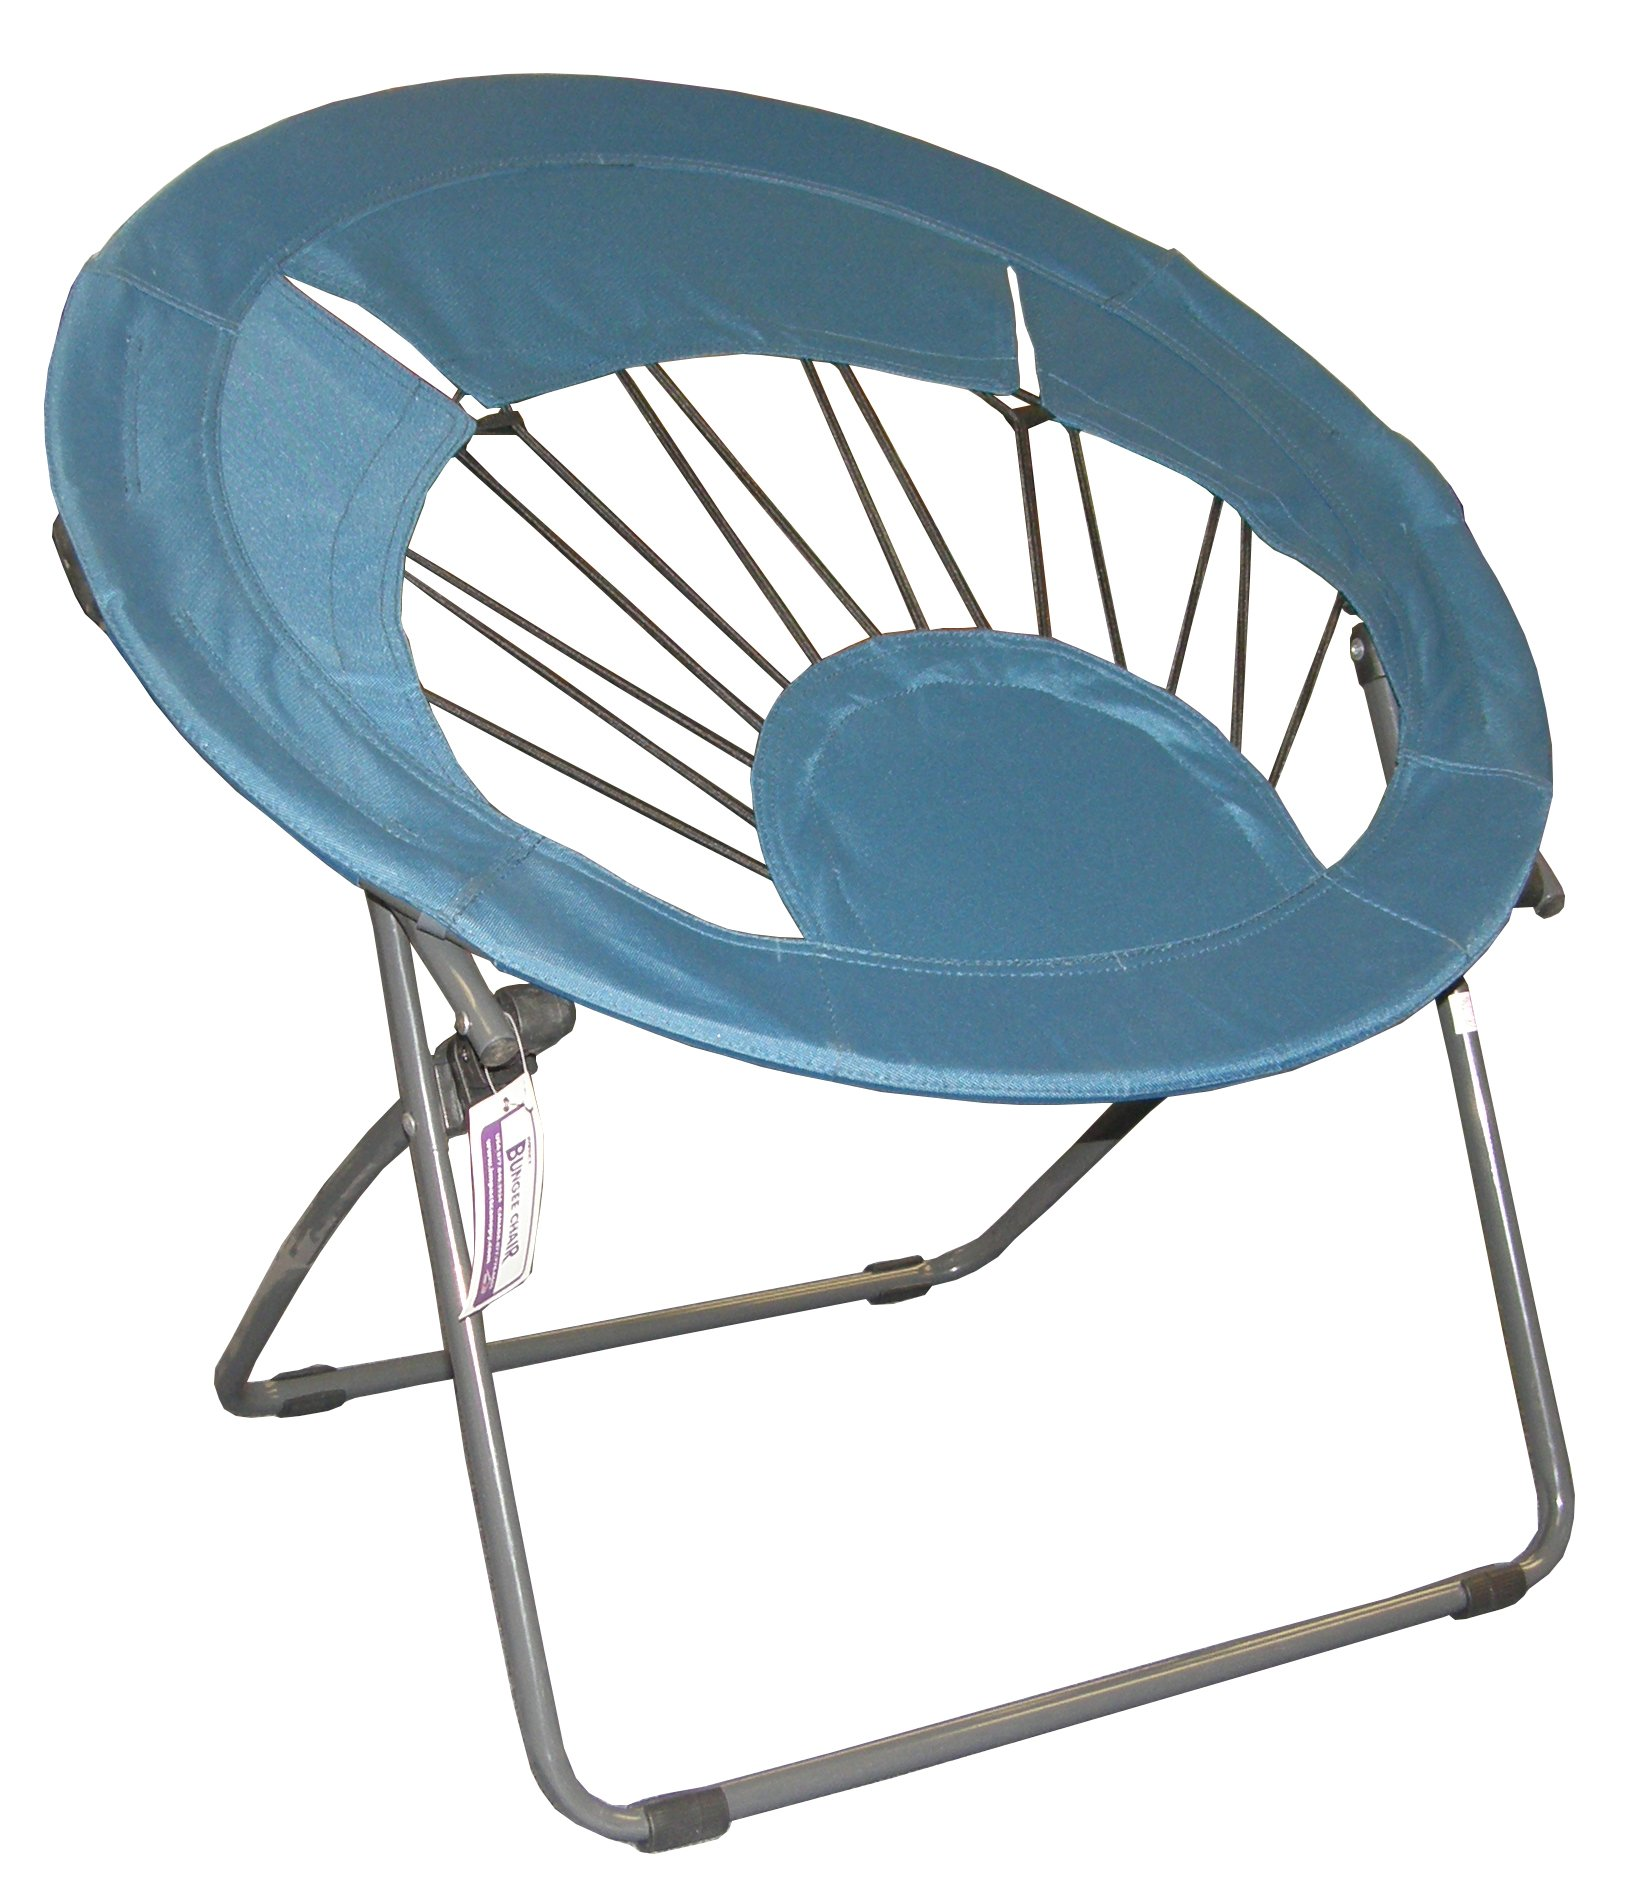 Merveilleux Impact Canopy Round Bungee Chair, Lightweight Portable Folding Chair For  Indoor And Outdoor Use,